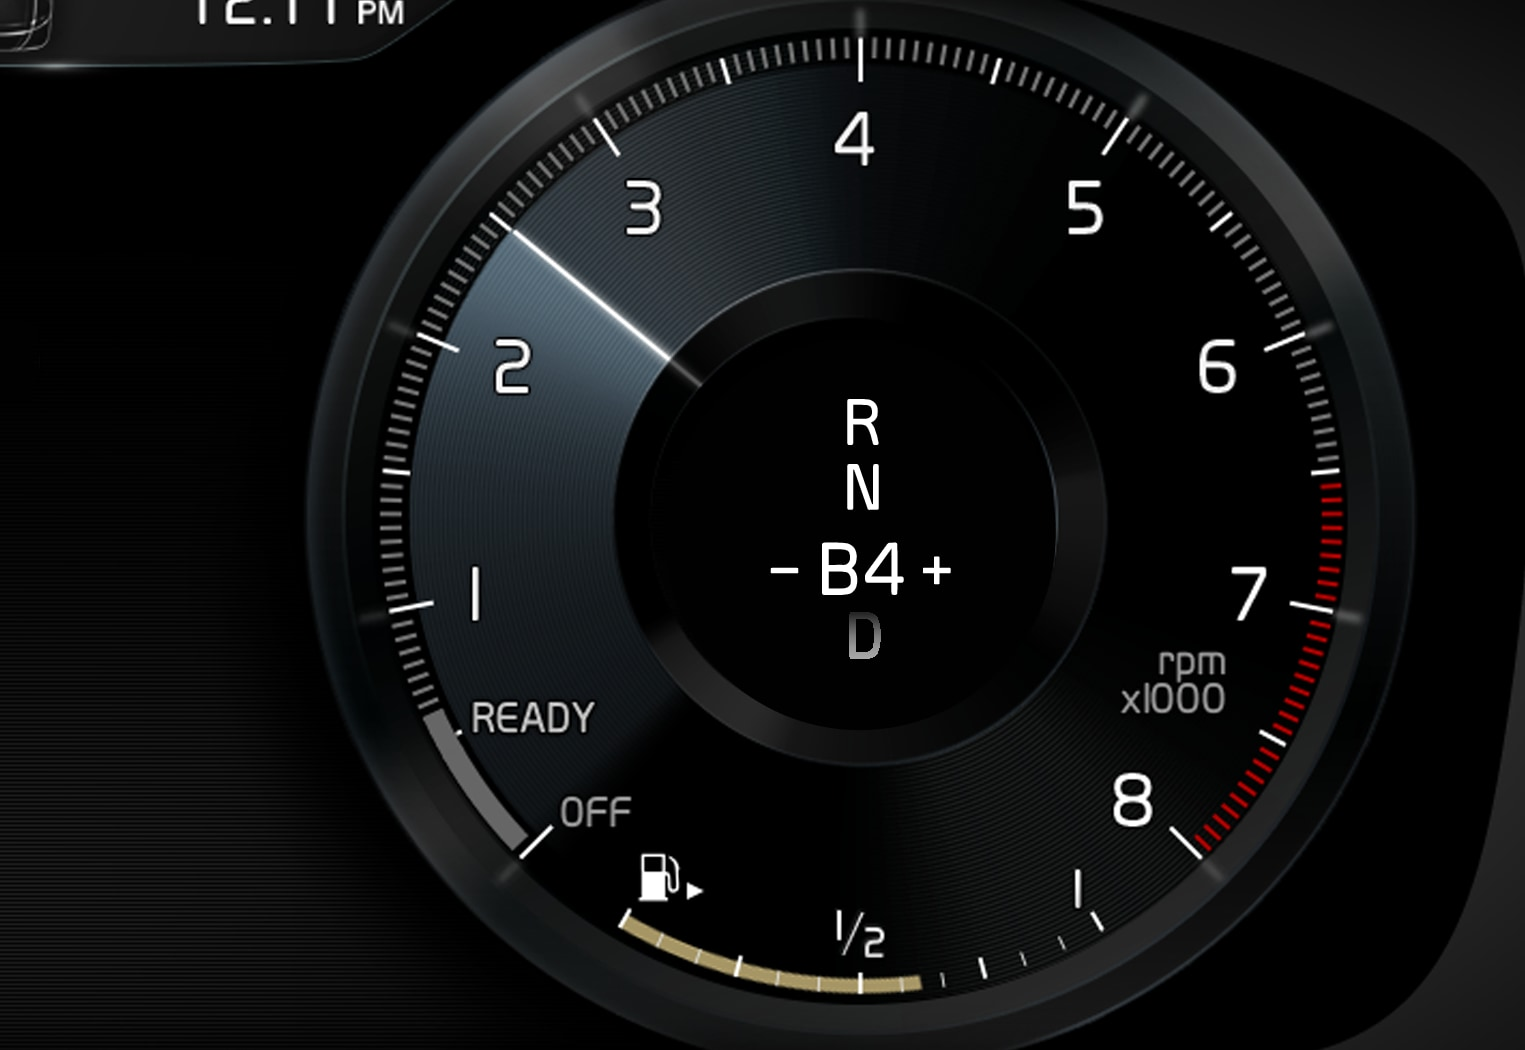 P5P6-1917-Hybrids-Manual gear in driver display